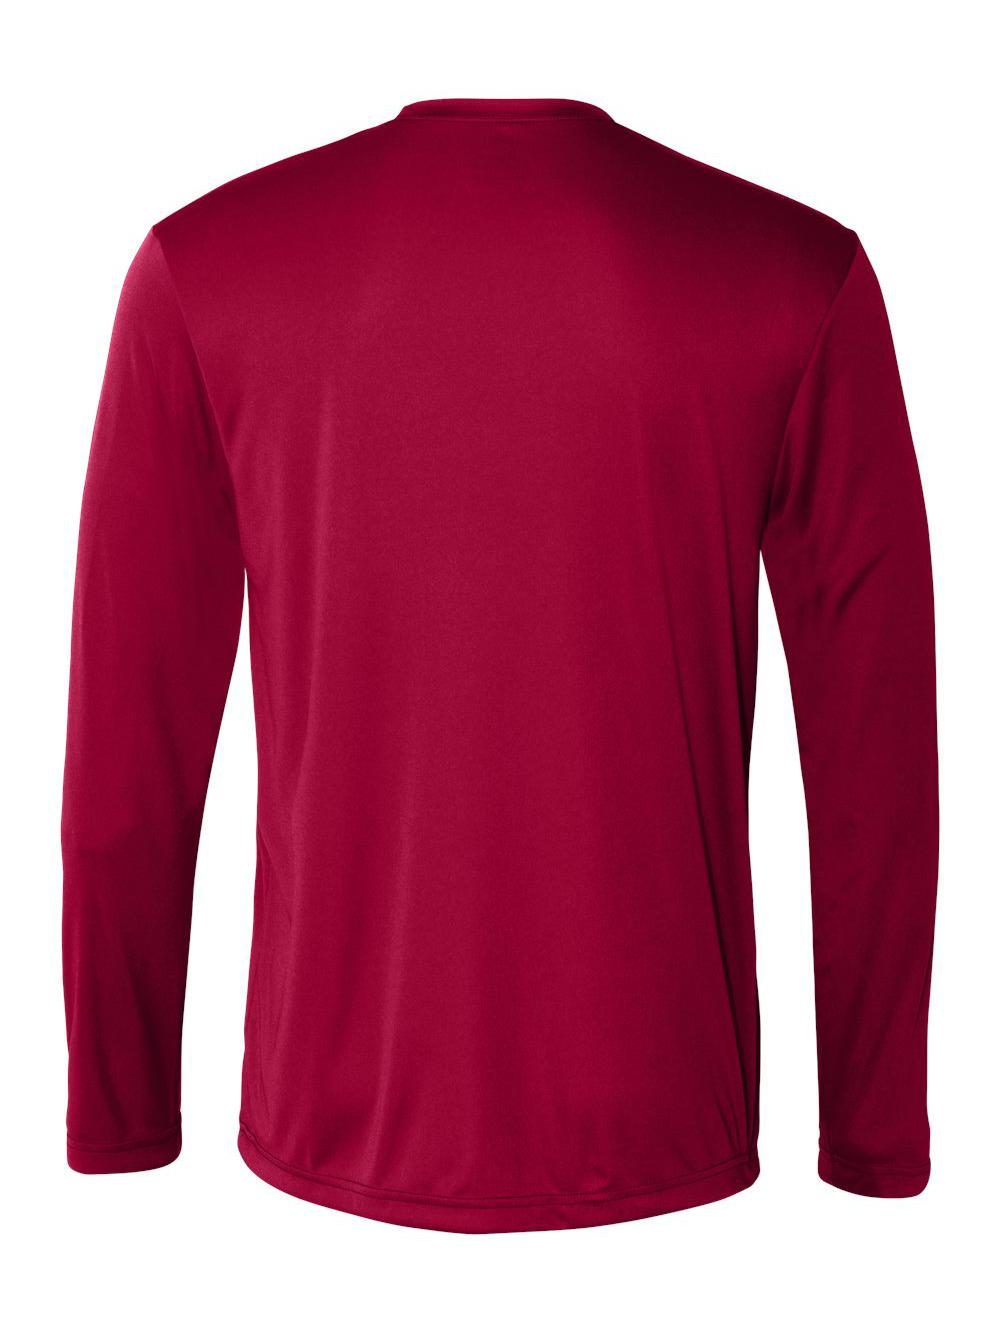 Hanes-Cool-Dri-Long-Sleeve-Performance-T-Shirt-482L thumbnail 7